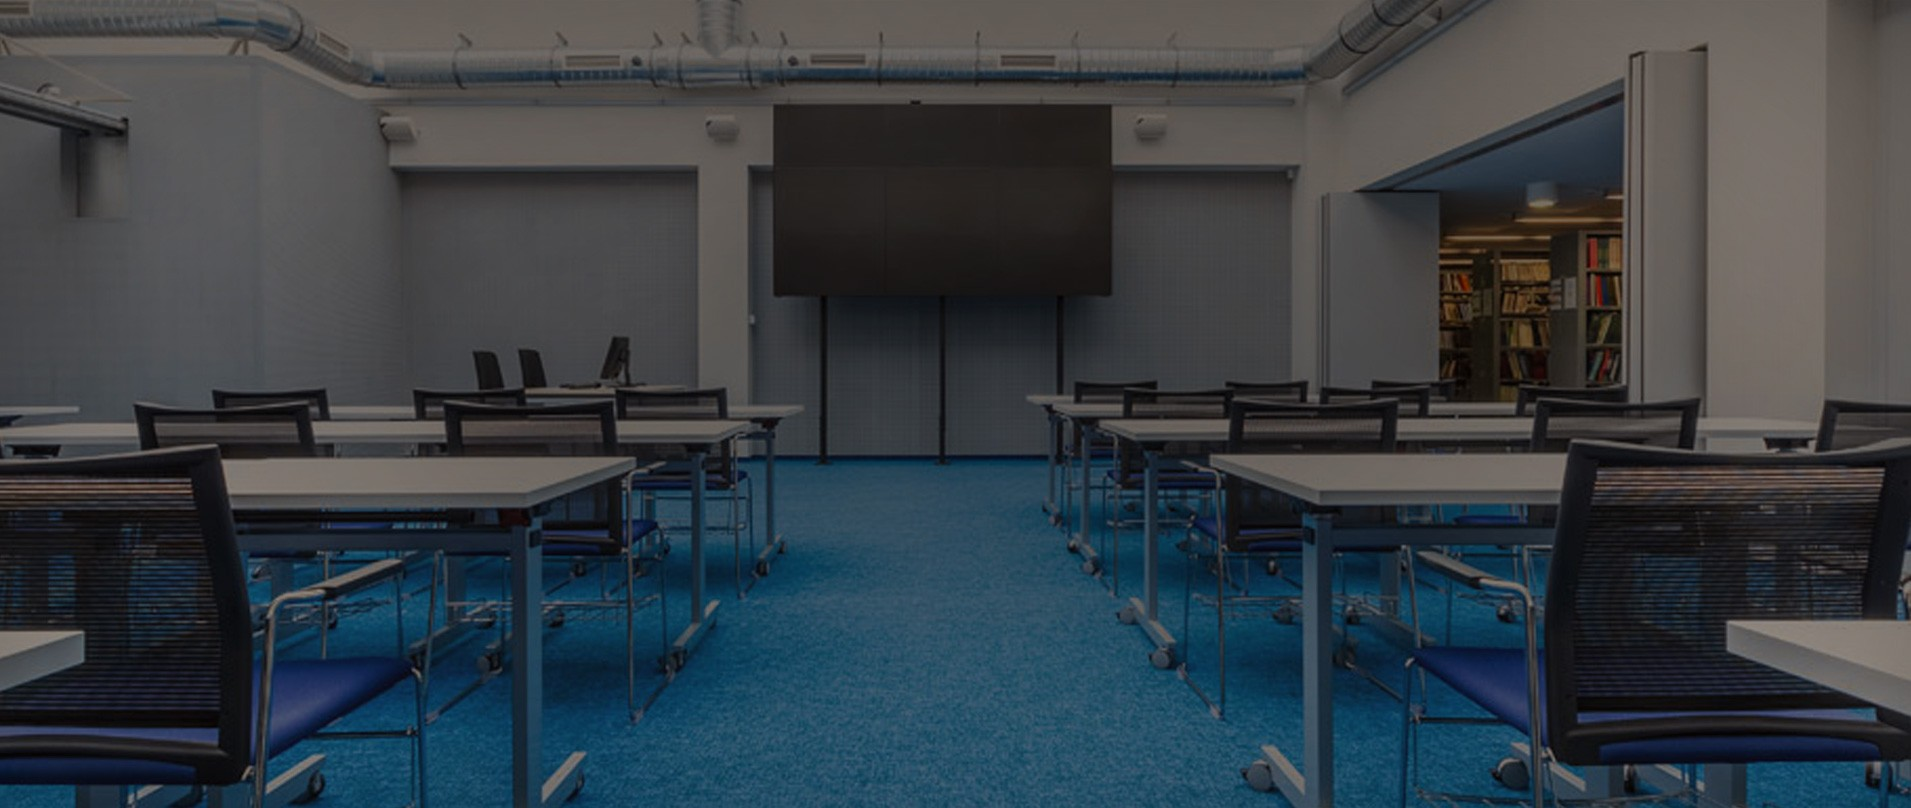 ICS | Professional Audio Solutions for Training Rooms